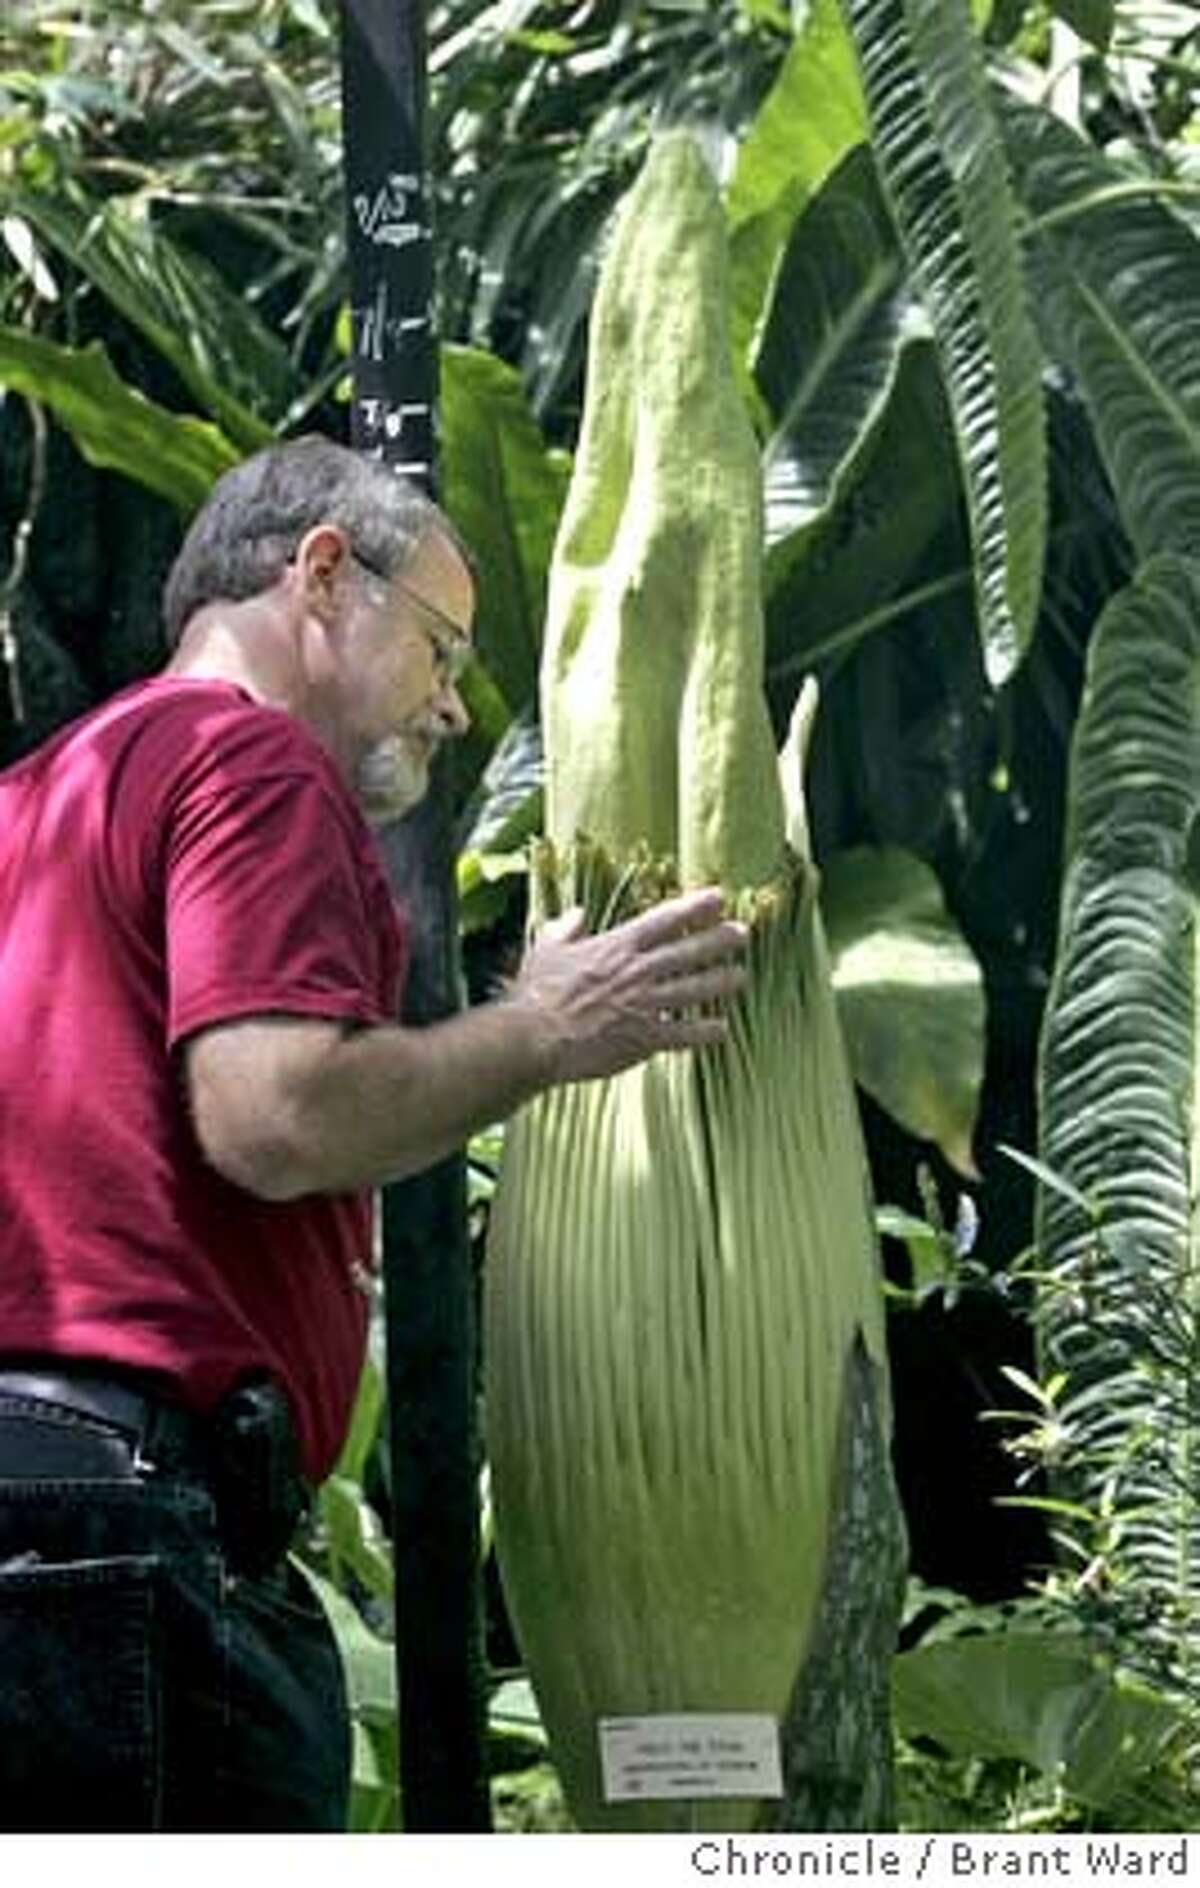 nevius12773_ward.jpg Bill Weaver of Sunnyvale, who owns Trudy the Titan, took a close look at her growth in the last day at the UC Botanical garden Monday. Trudy could bloom any day into the size of a punch bowl with a most horrible smell, like rotting flesh. Brant Ward 7/12/05